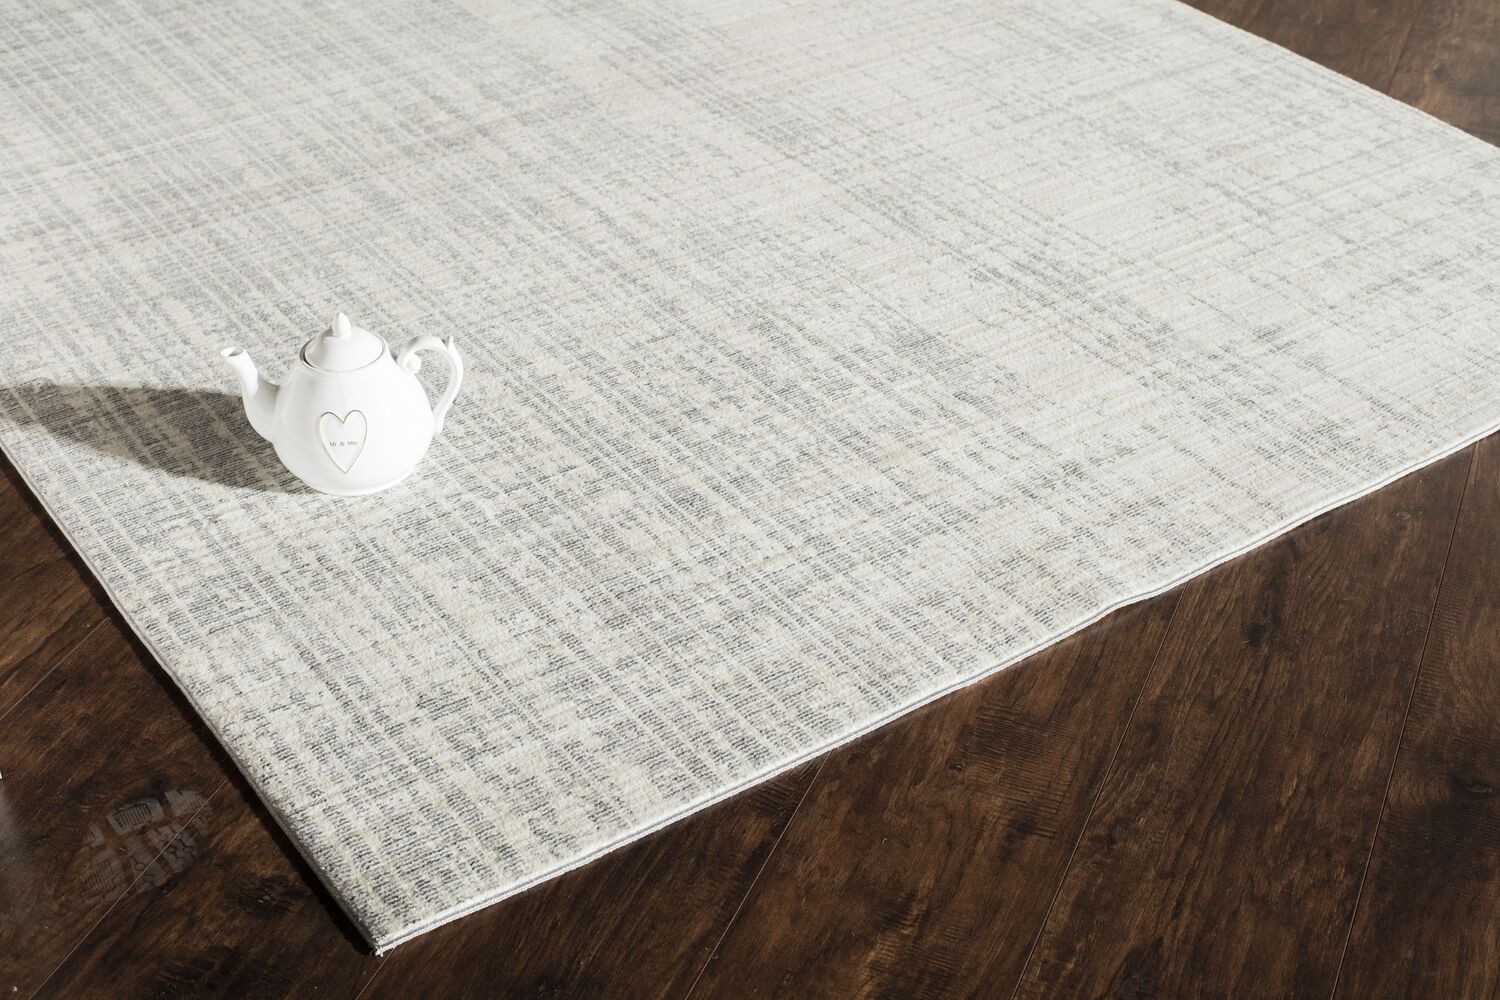 Asteria Phoebe Champagne Ivory/Gray Area Rug Size: 5' x 8'